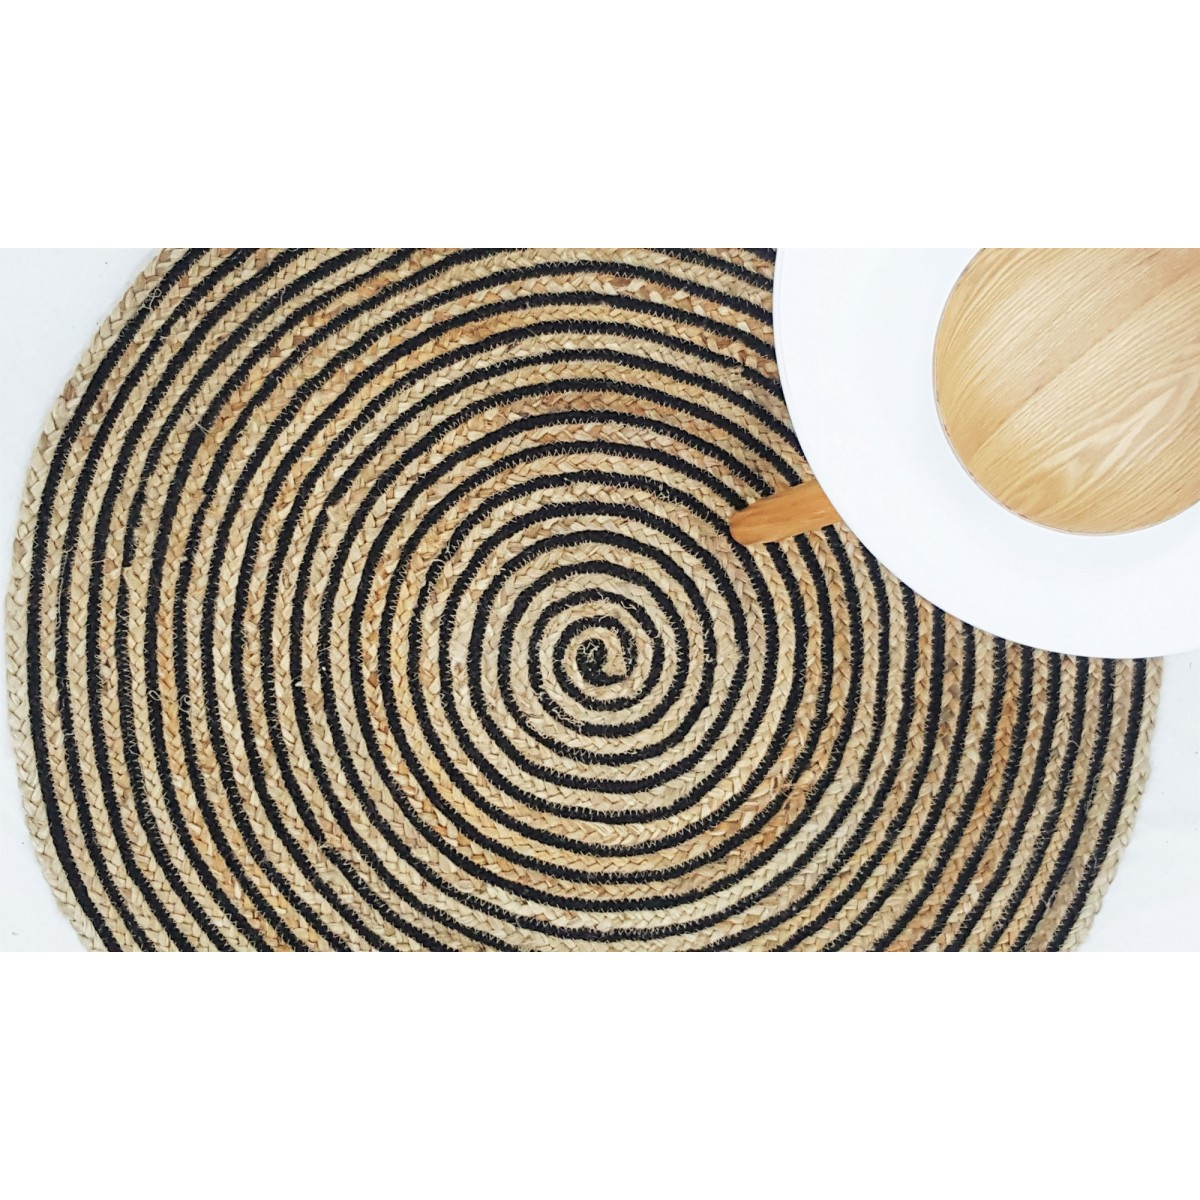 Orchid Round Jute Rug | HRB Wholesale